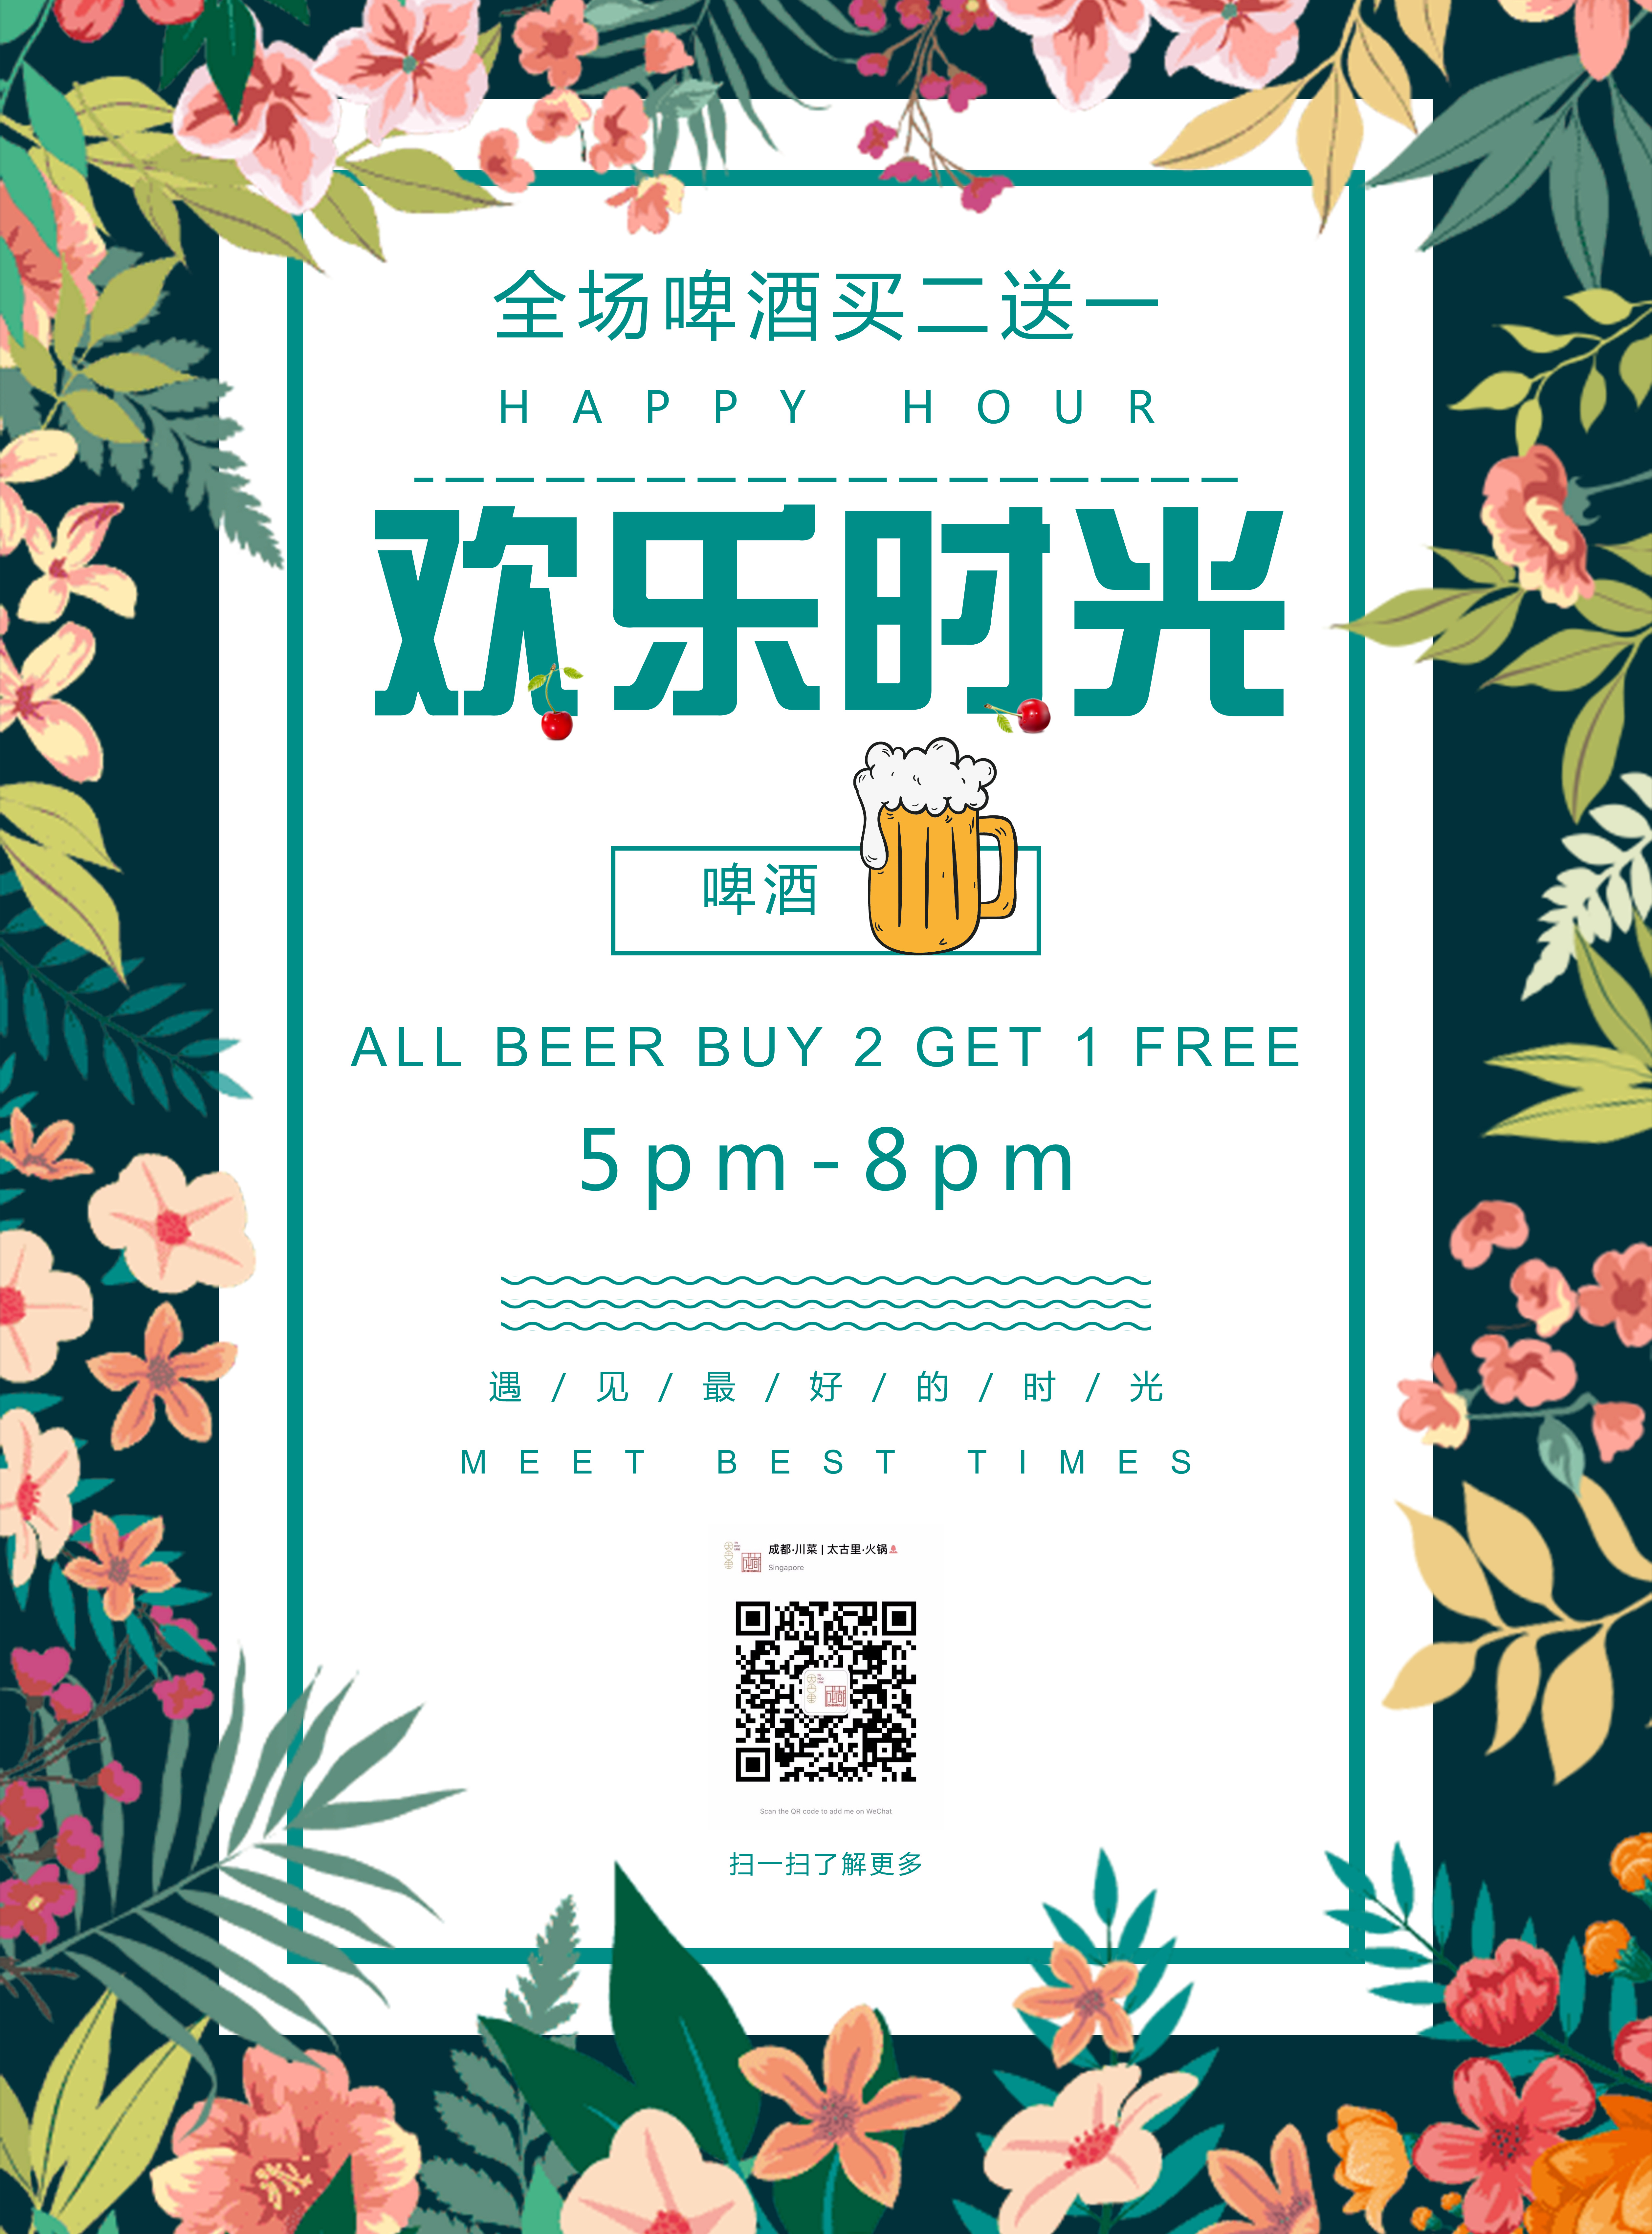 Taikoo Lane Singapore is having 30% Off, Buy 2 Get 1 FREE, 1-for-1 Promotions 15 Nov - 15 Dec 2019 | Why Not Deals 1 & Promotions